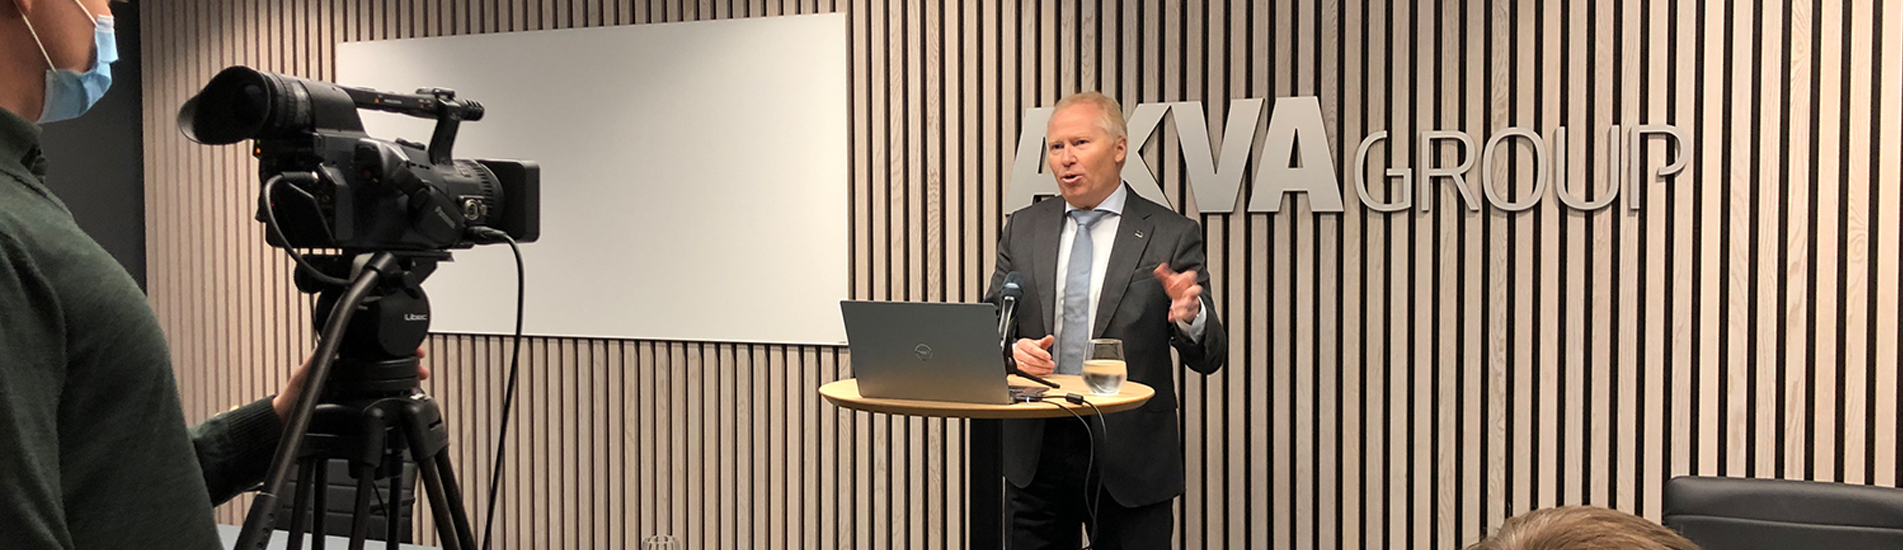 BEHIND THE SCENES: CEO Knut Nesse speaks in front of camera on Capital Markets Day.